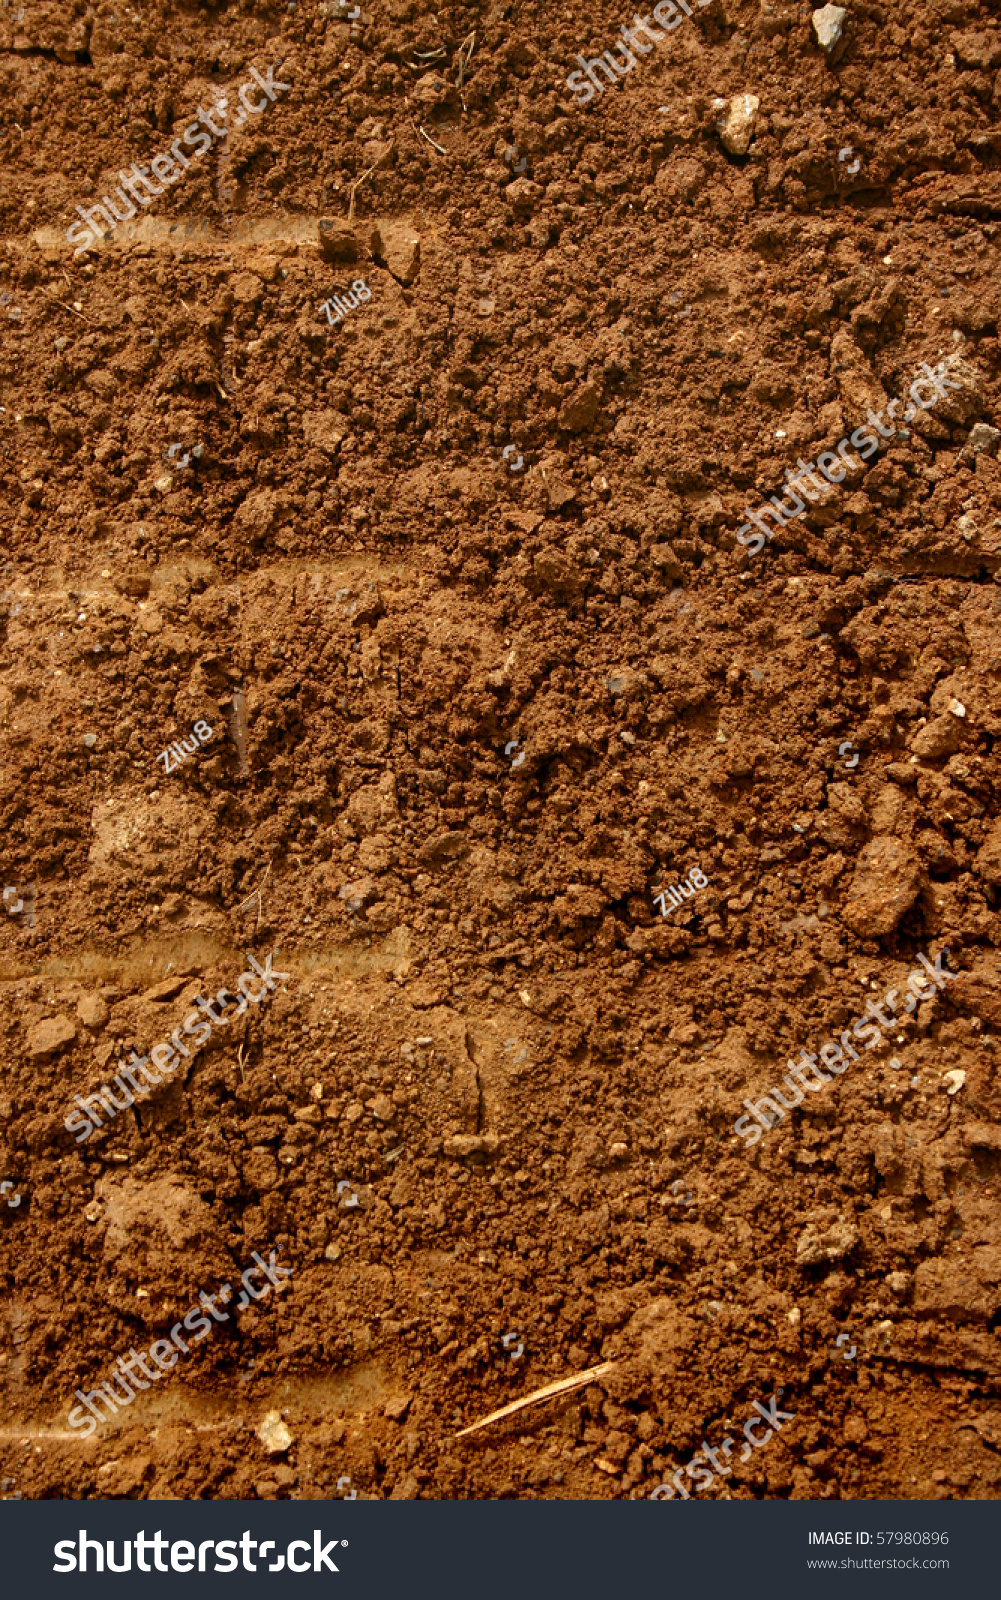 Soil texture stock photo 57980896 shutterstock for Uses of soil in english